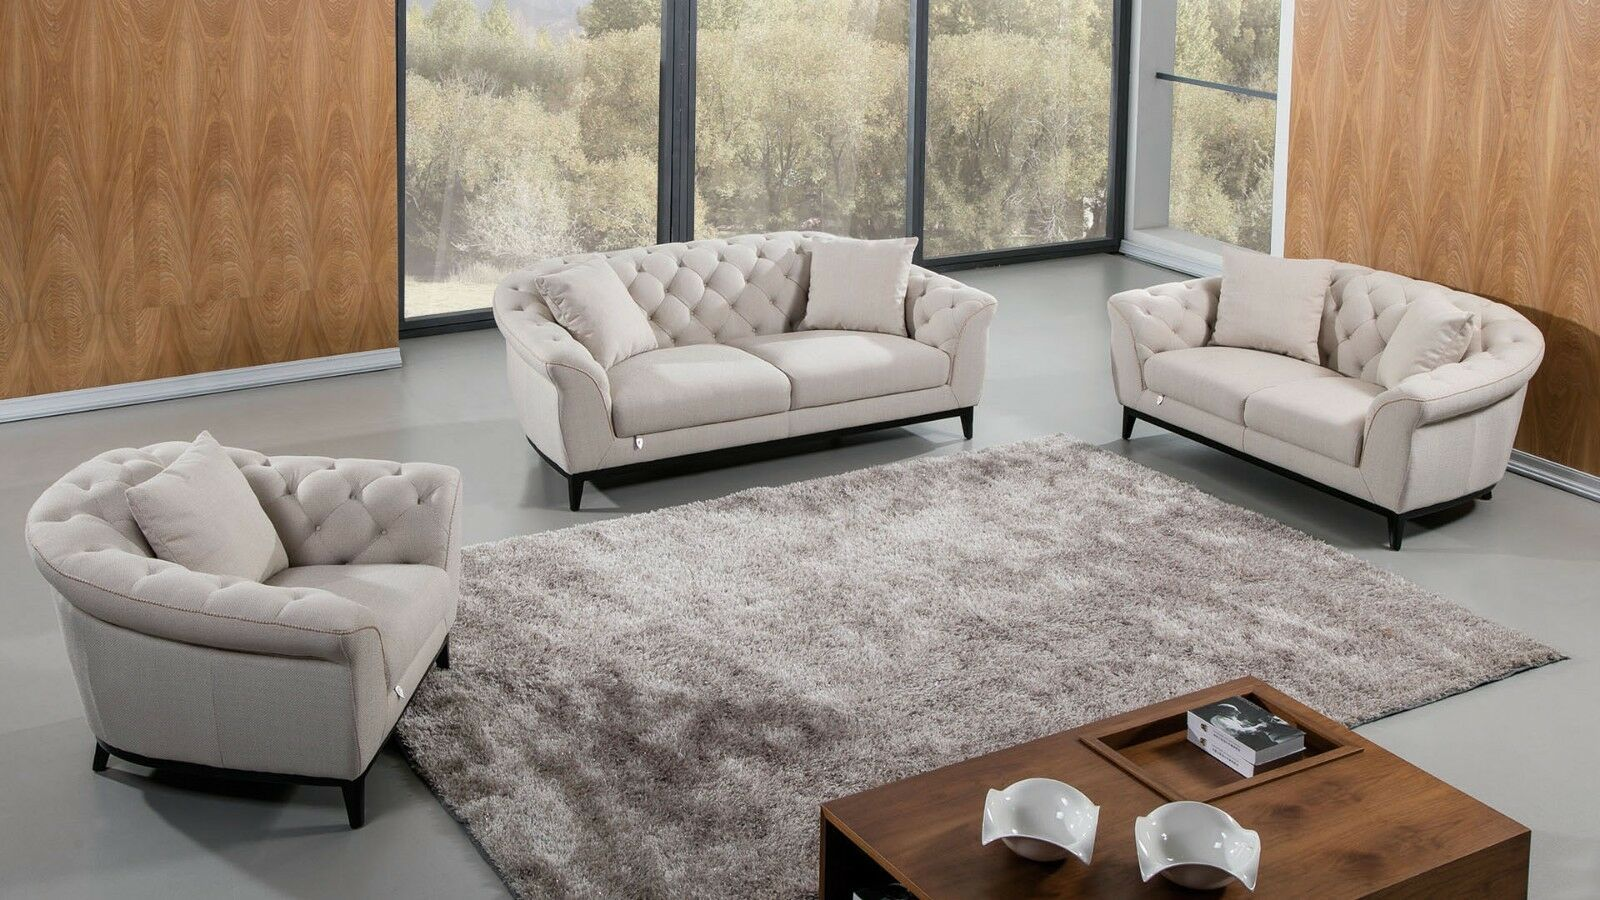 3 Pc Modern Cream Fabric Sofa Loveseat Chair Living Room Couch Set Sofa Living Ideas Of Sofa Living Sofaliving Sof With Images Sofa Set Couches Living Room Couch Set